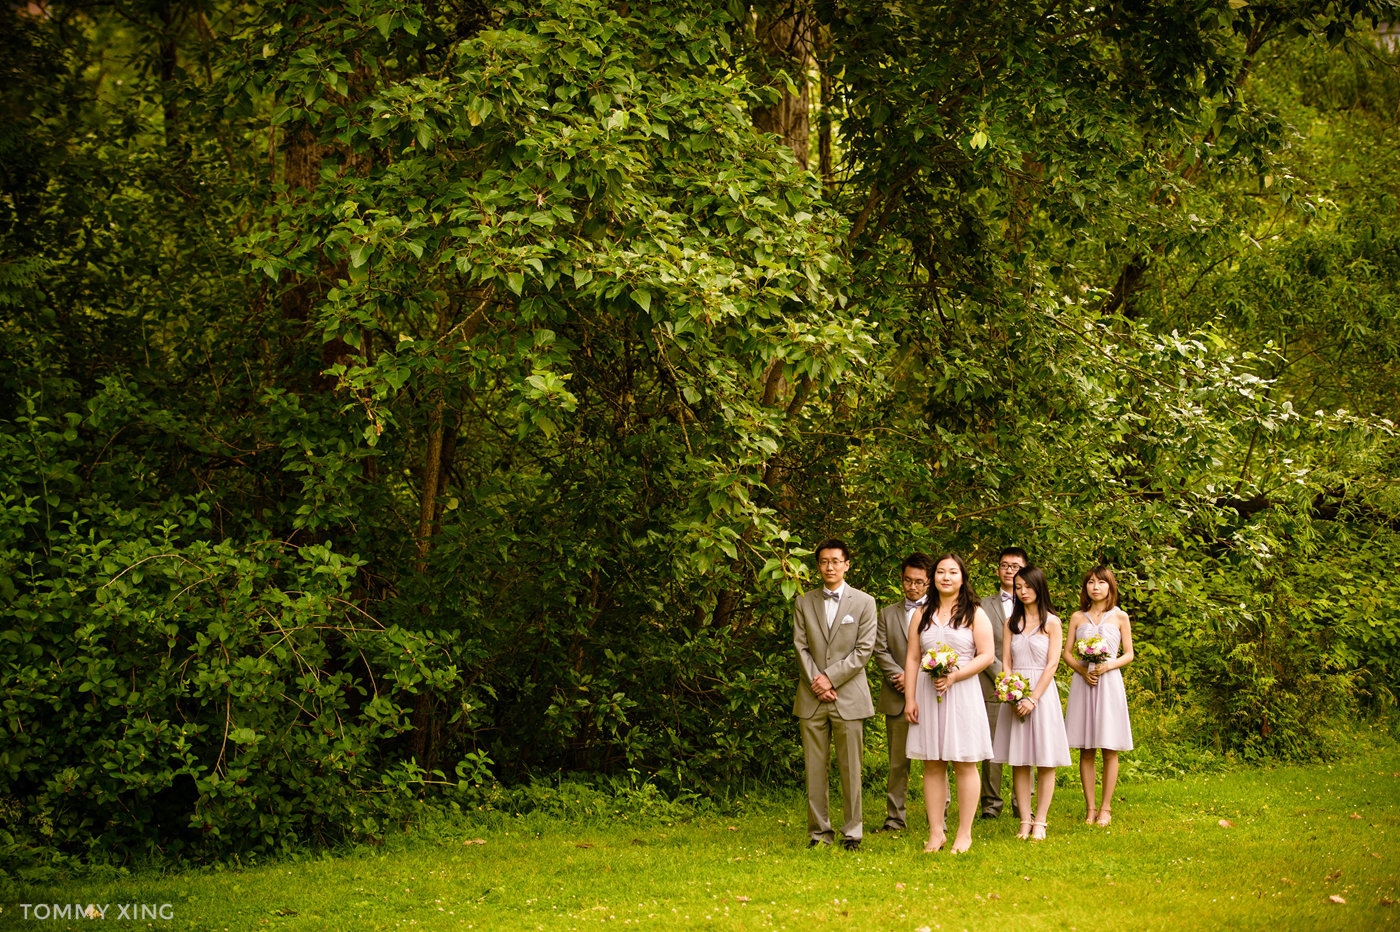 Seattle Wedding and pre wedding Los Angeles Tommy Xing Photography 西雅图洛杉矶旧金山婚礼婚纱照摄影师 058.jpg